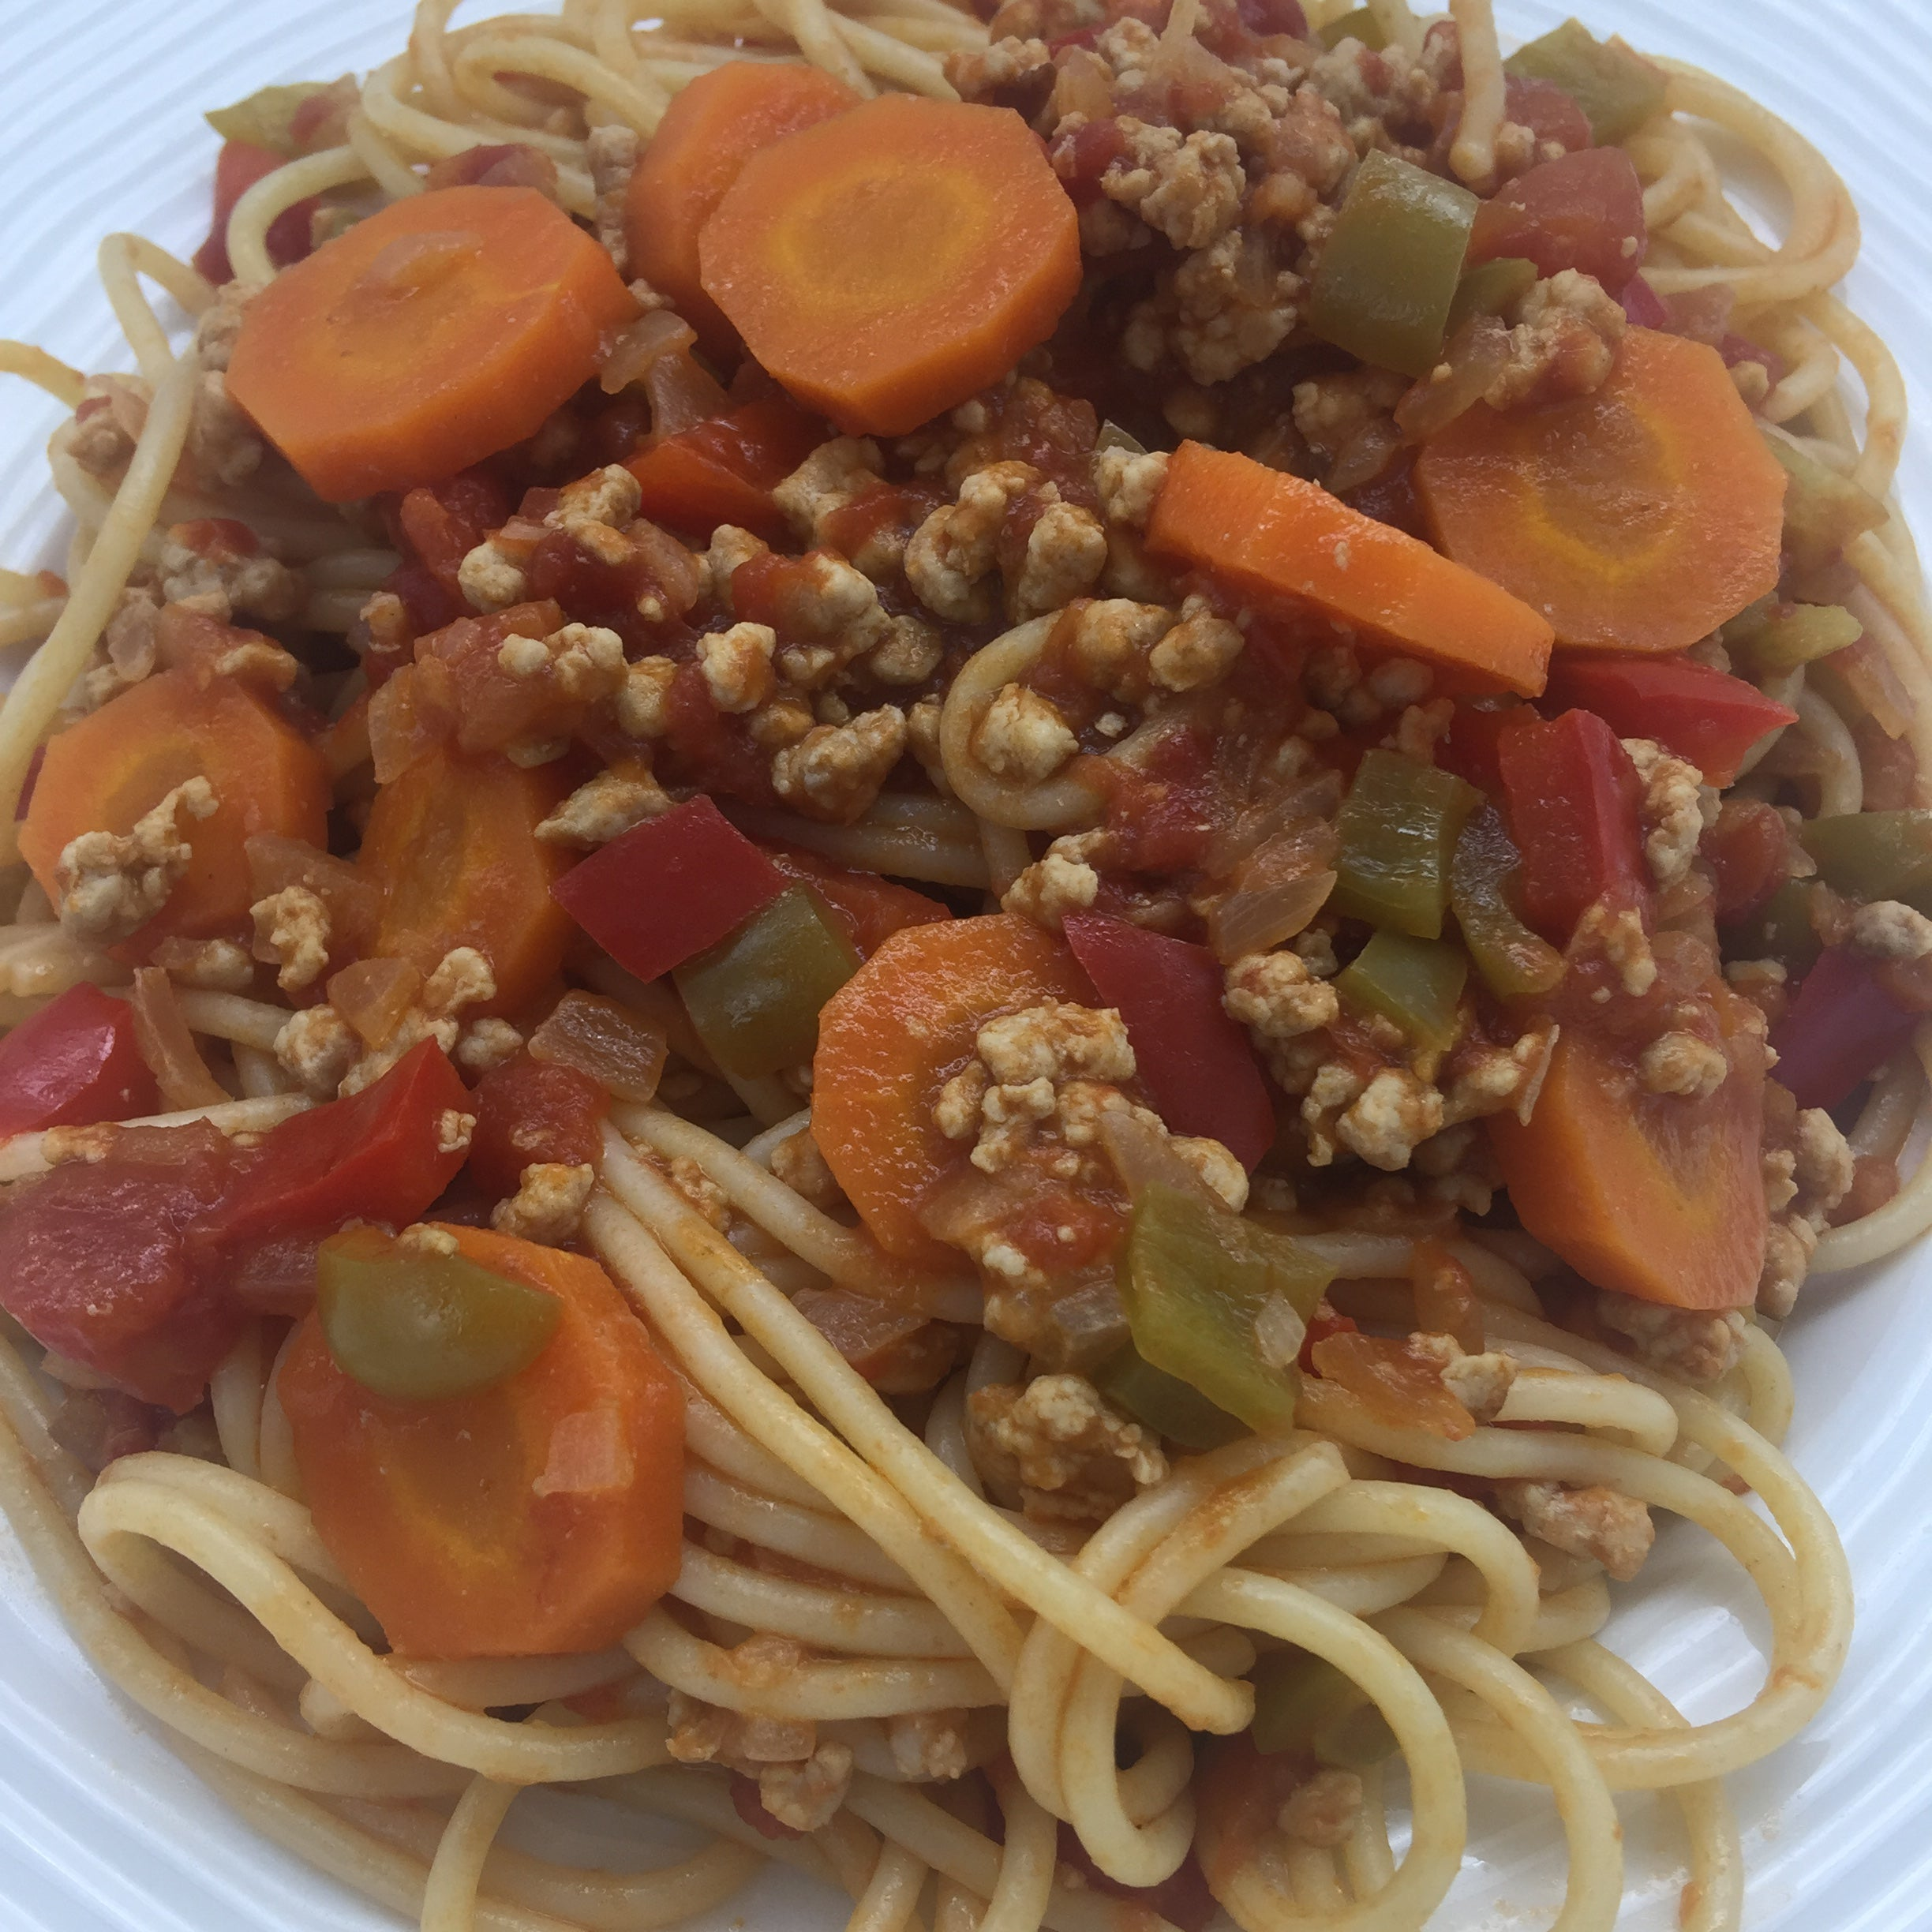 Familychef spaghetti with mince meat plate close up